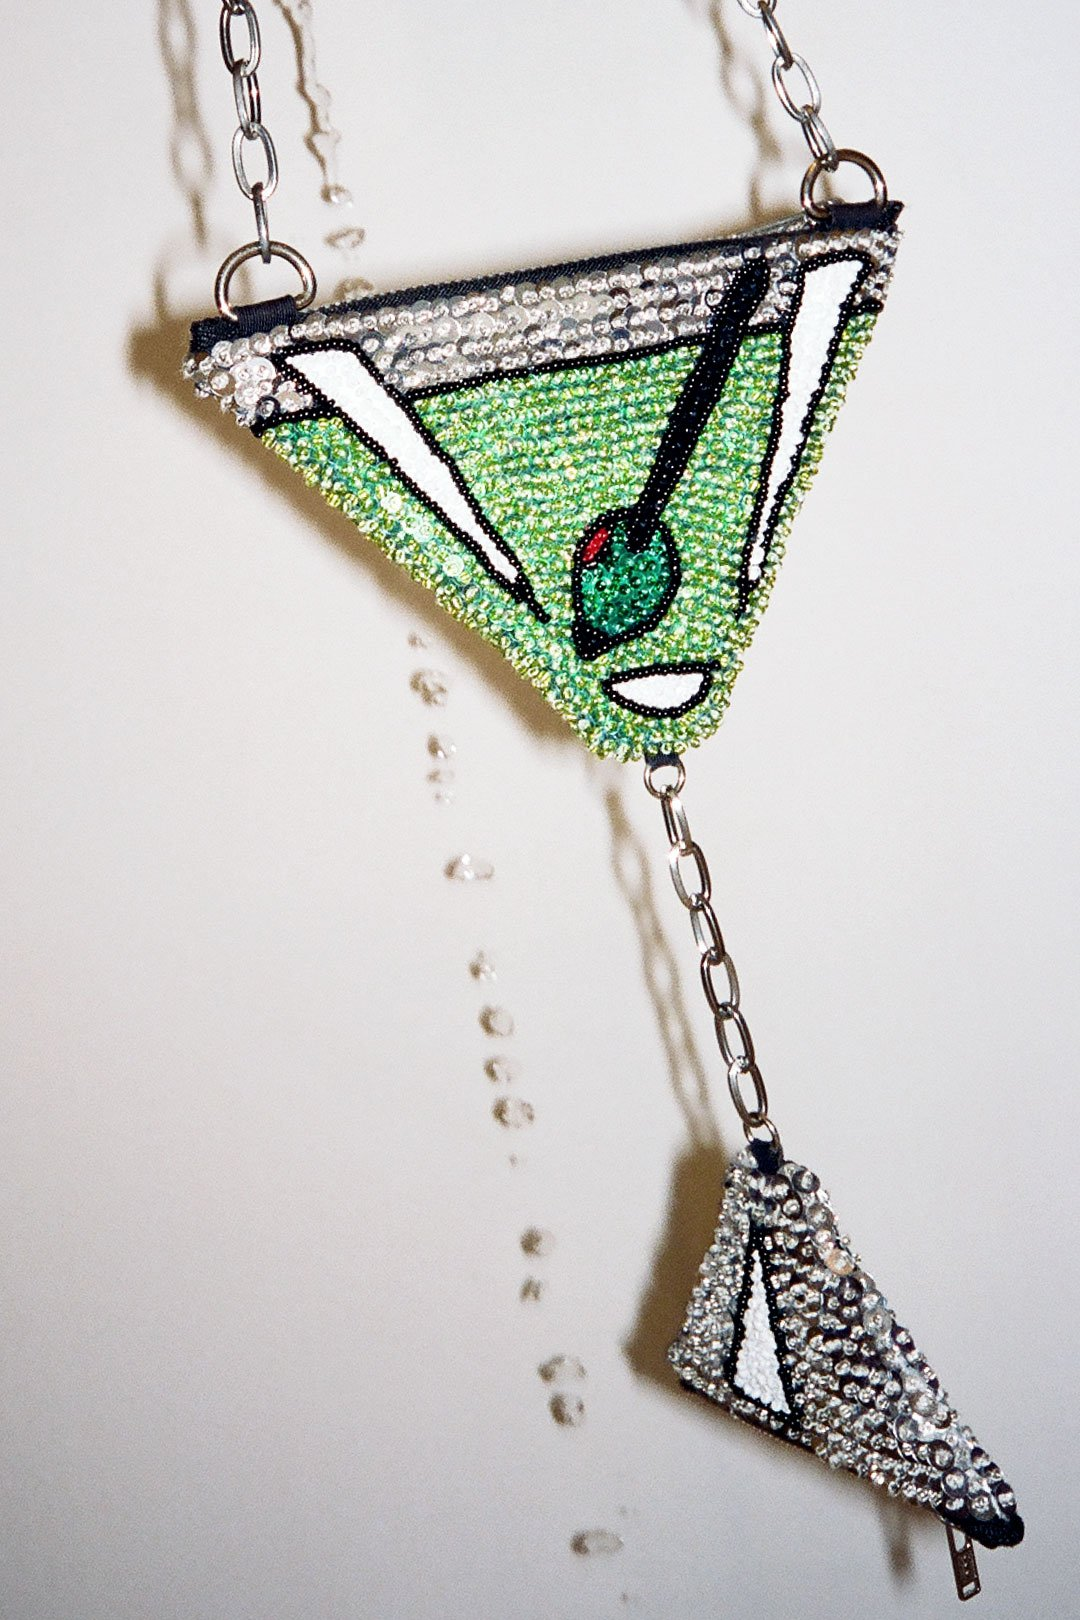 The Dirty Martini Purse